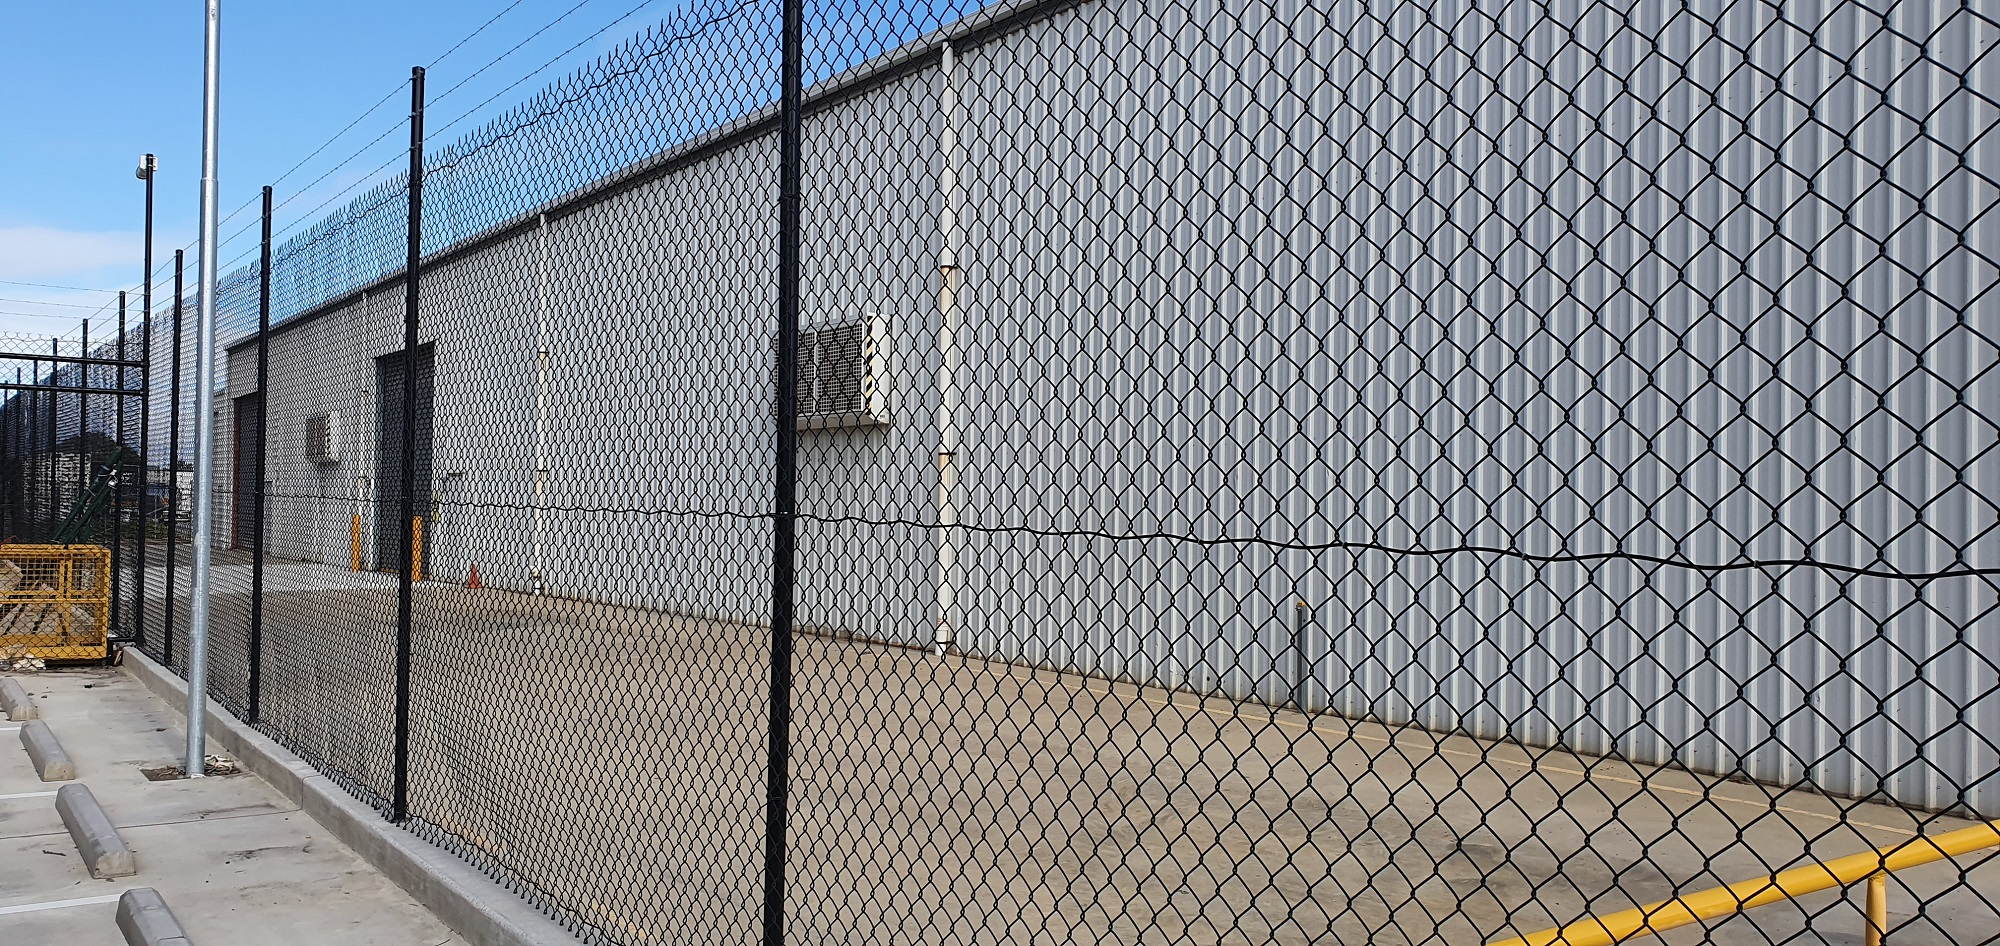 Commercial Fencing Adelaide Fence Centre Chain Mesh Security Fence Wingfield 9